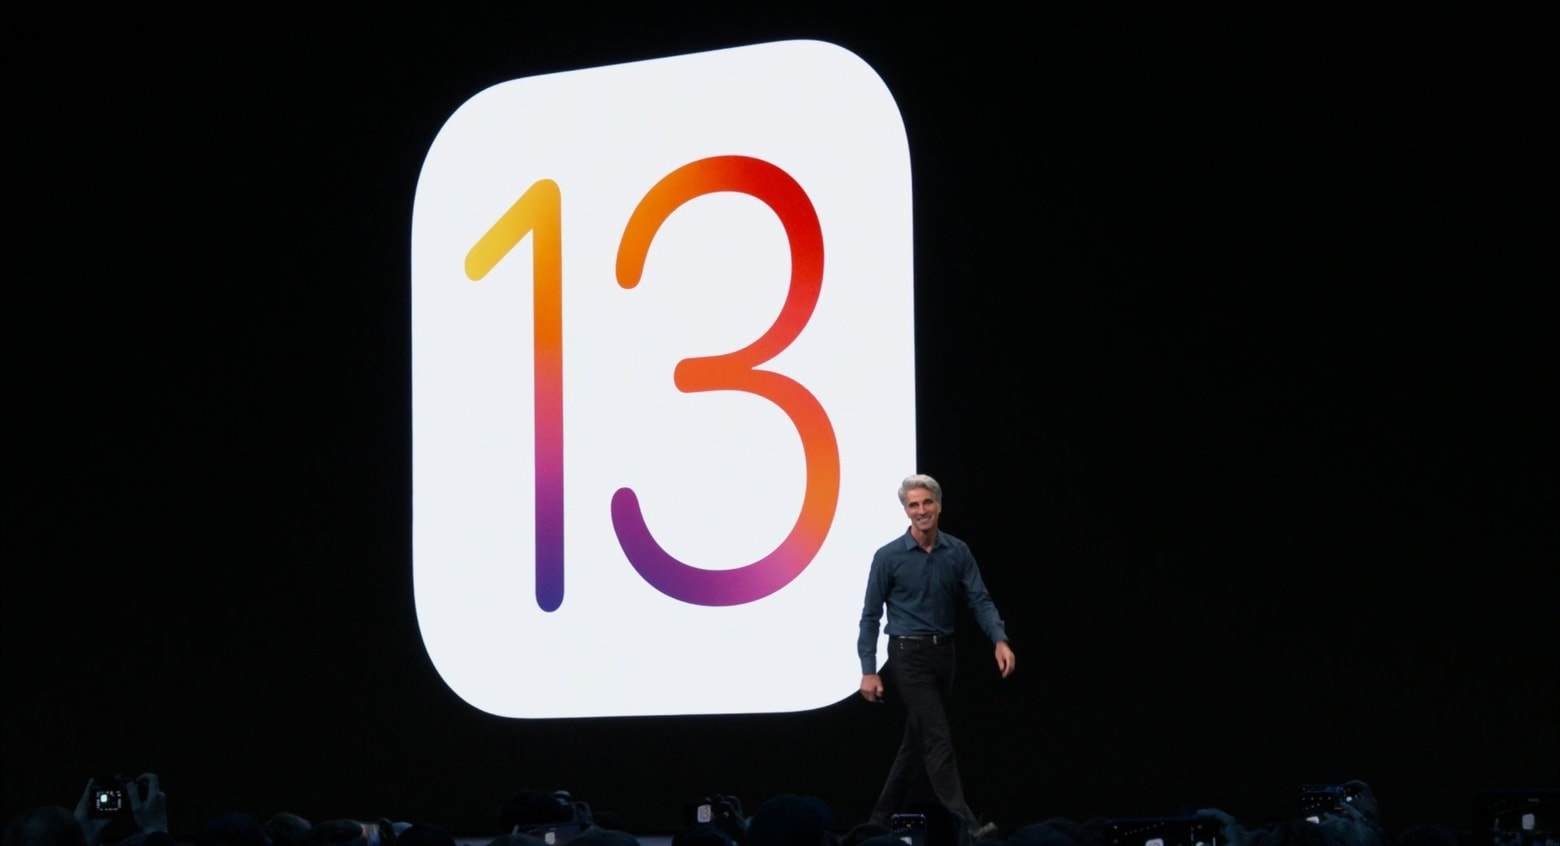 Buggy iOS 13 made Apple rethink how it develops software